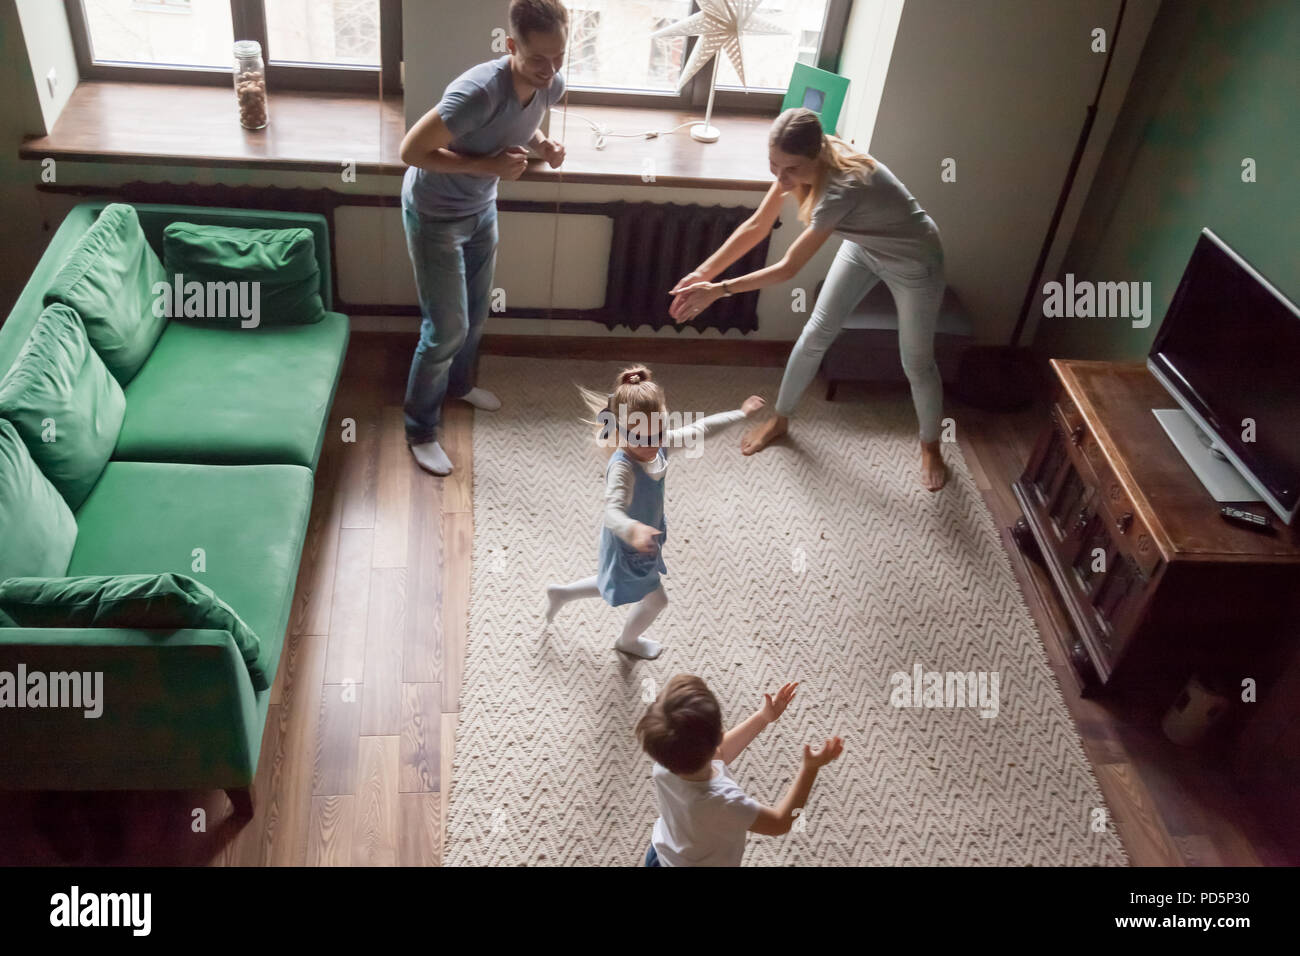 Happy family with children playing hide and seek game together - Stock Image